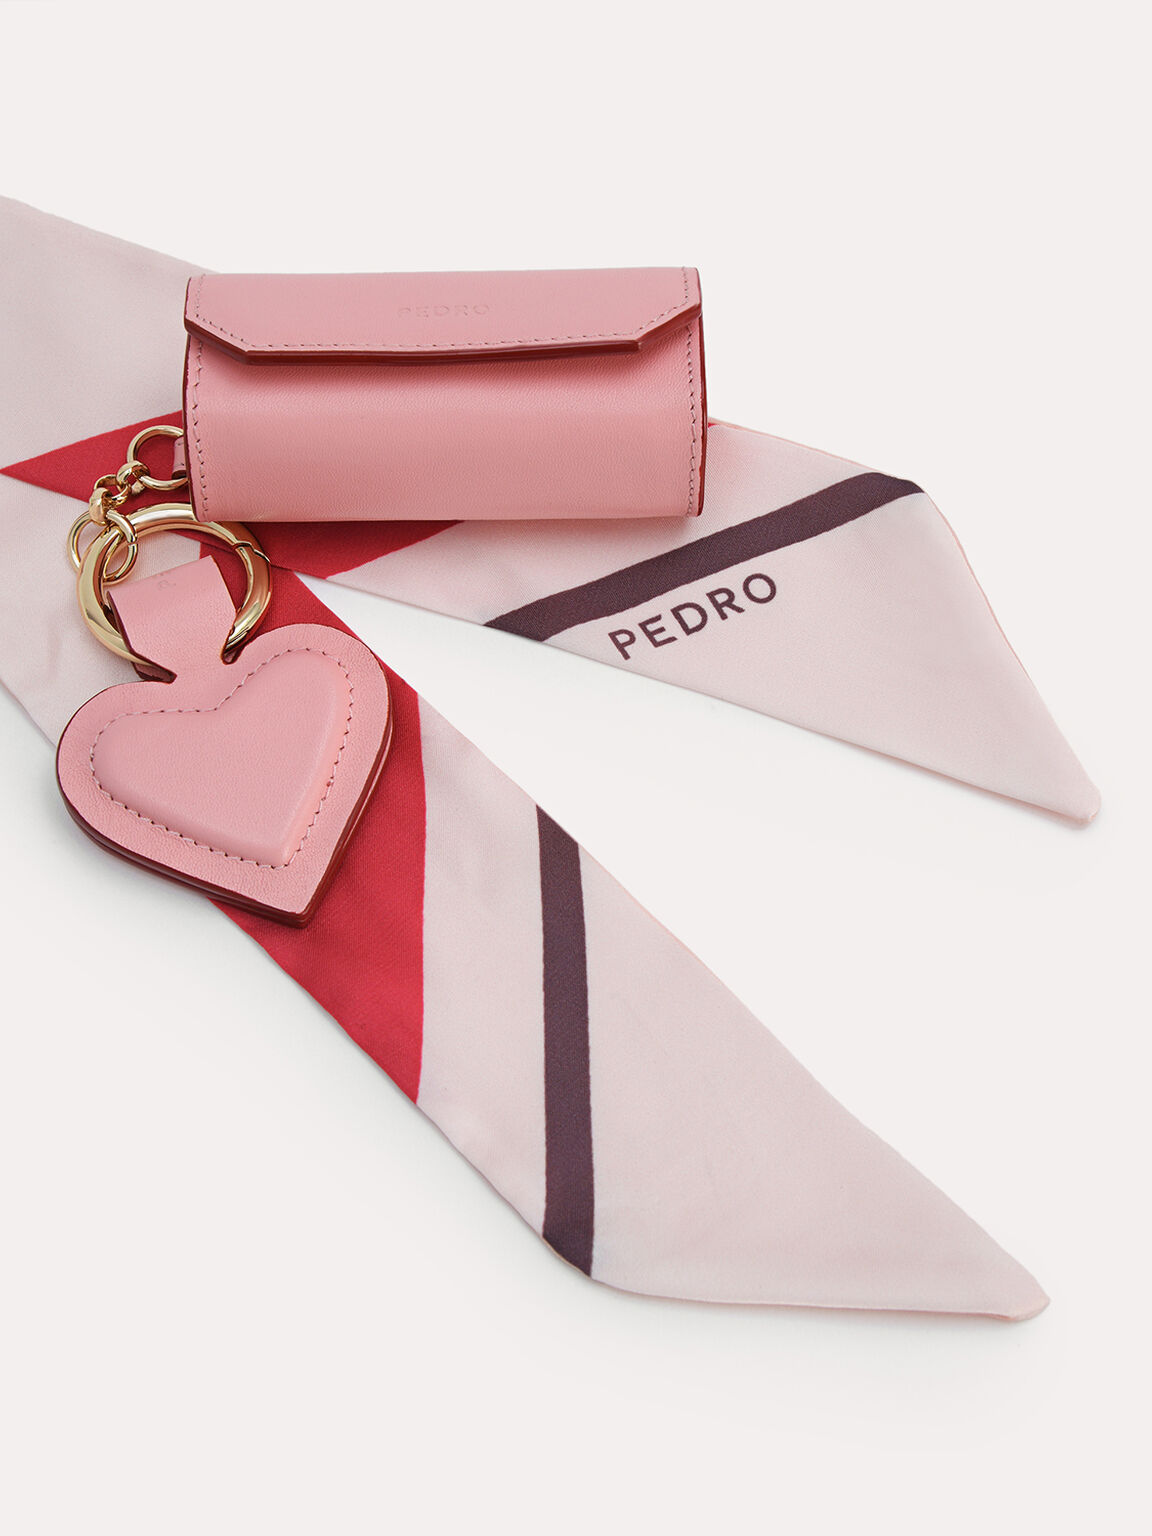 Mini Leather Pouch, Pink, hi-res